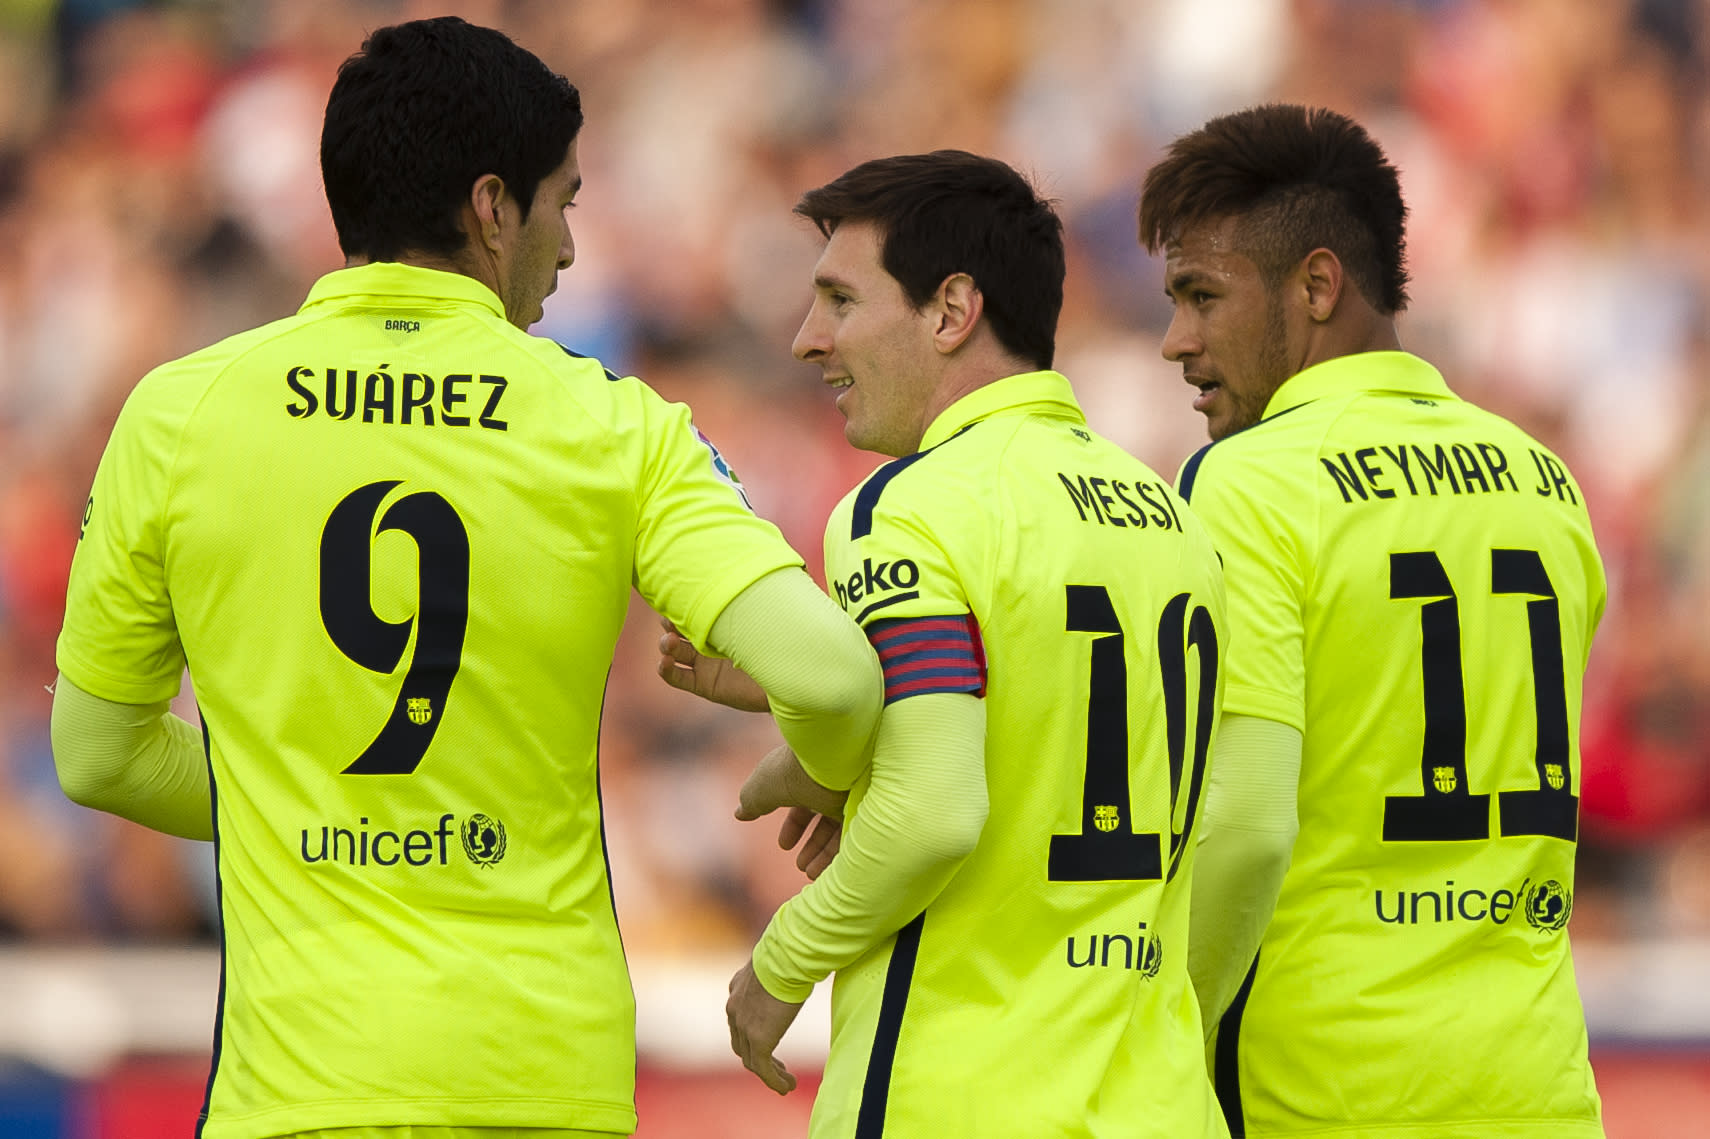 Barcelona faces tough Villarreal in Copa del Rey semis